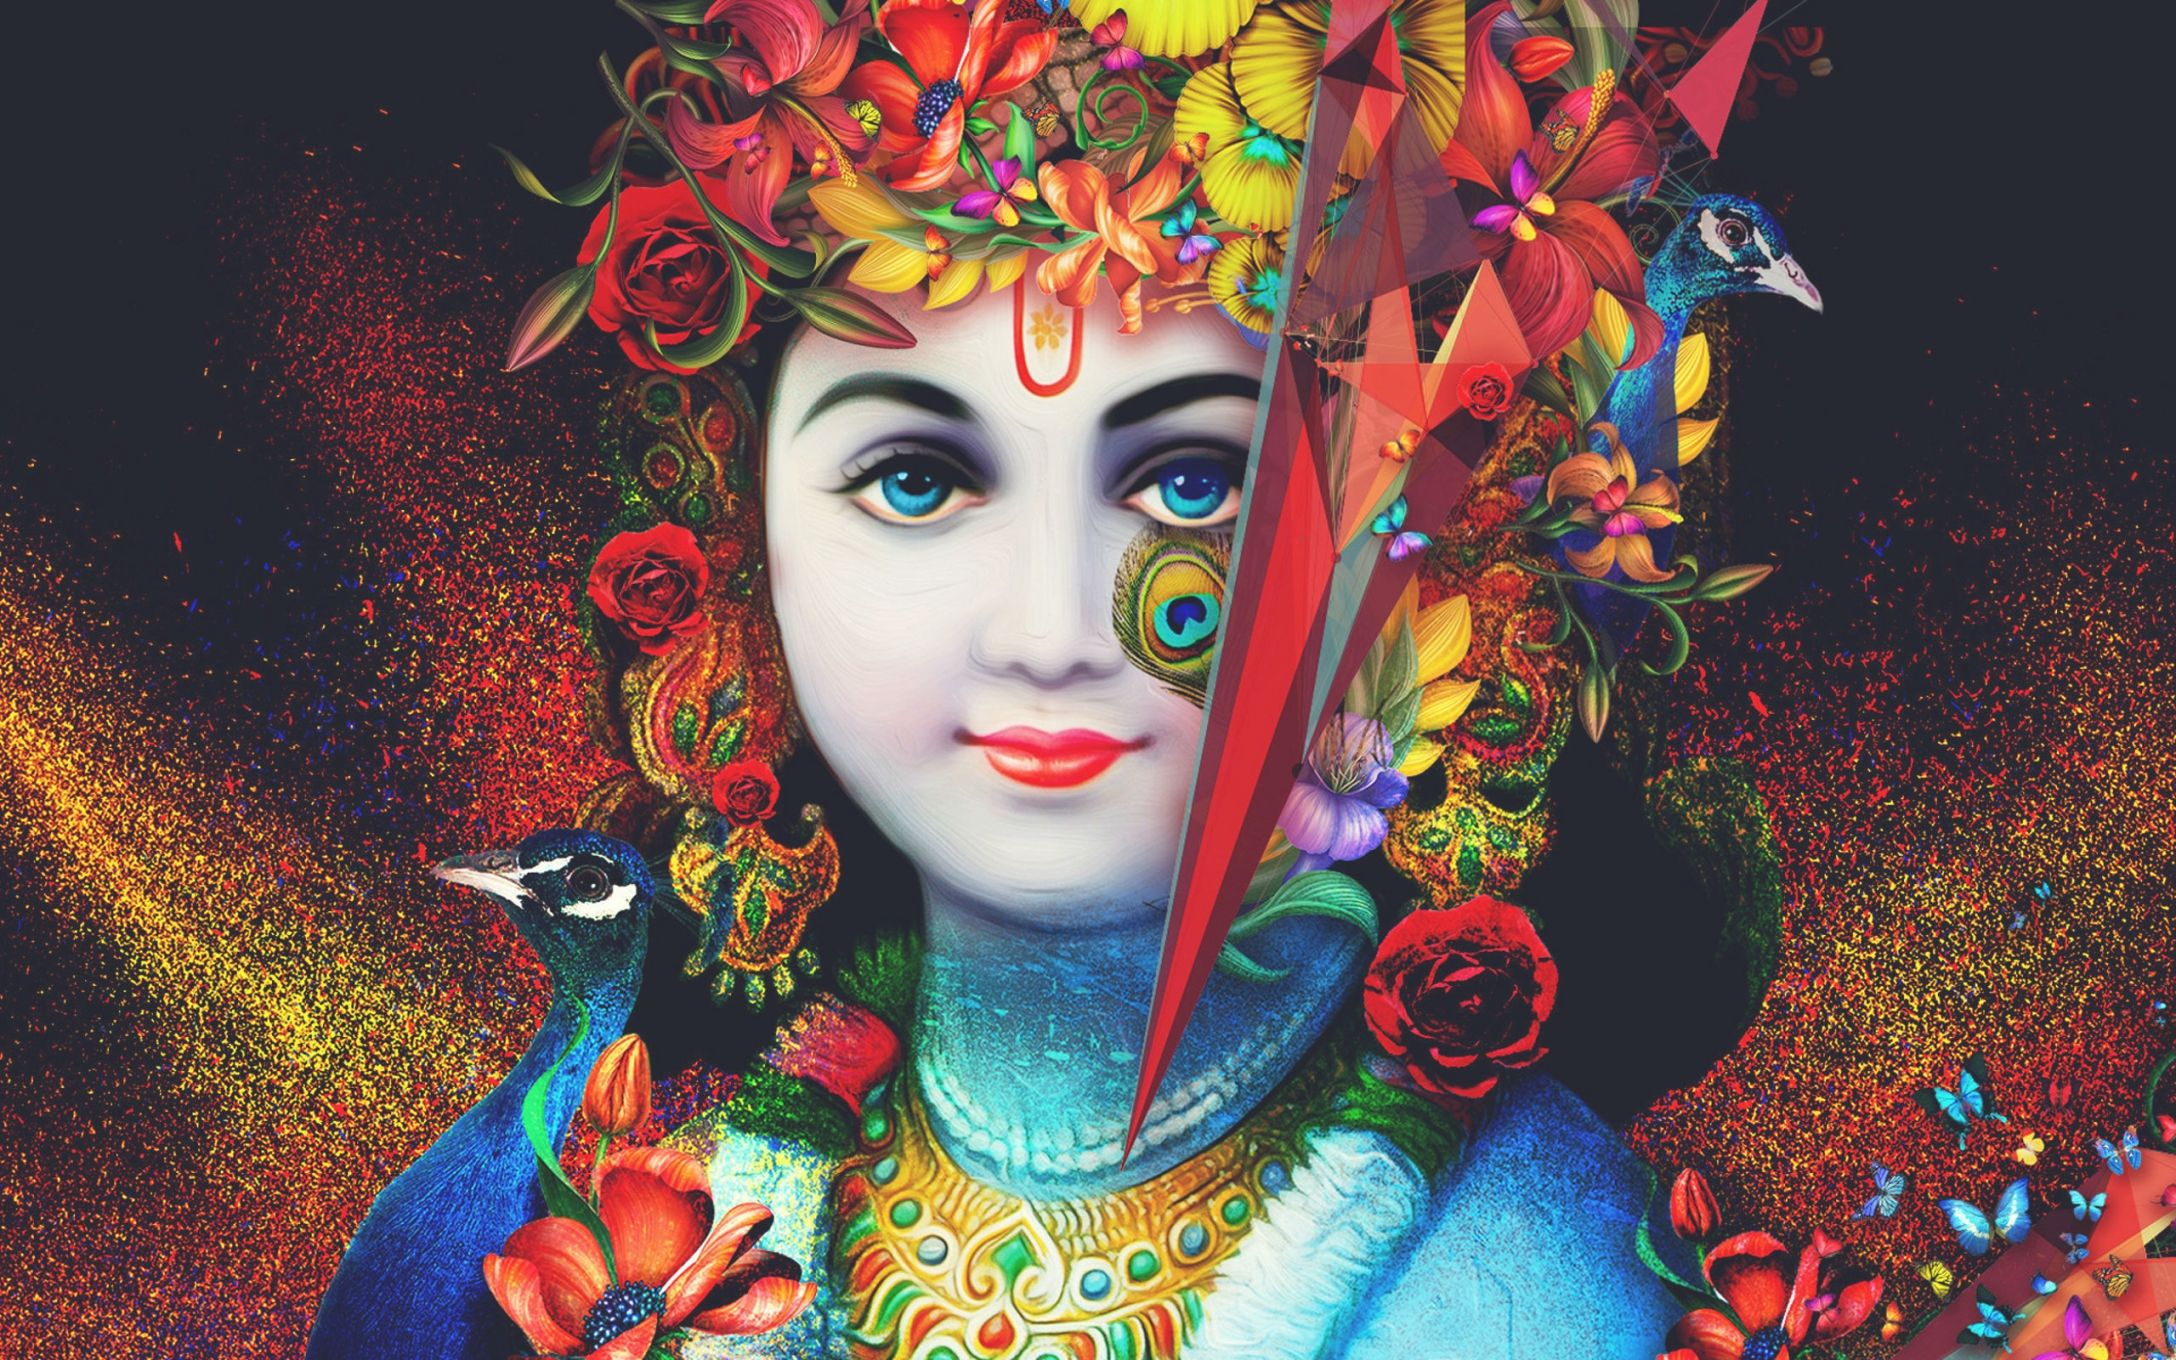 3d Hd Wallpapers Krishna Wallpapers Hd High Difinition Krishna Wallpaper Lord Krishna Wallpapers Lord Krishna